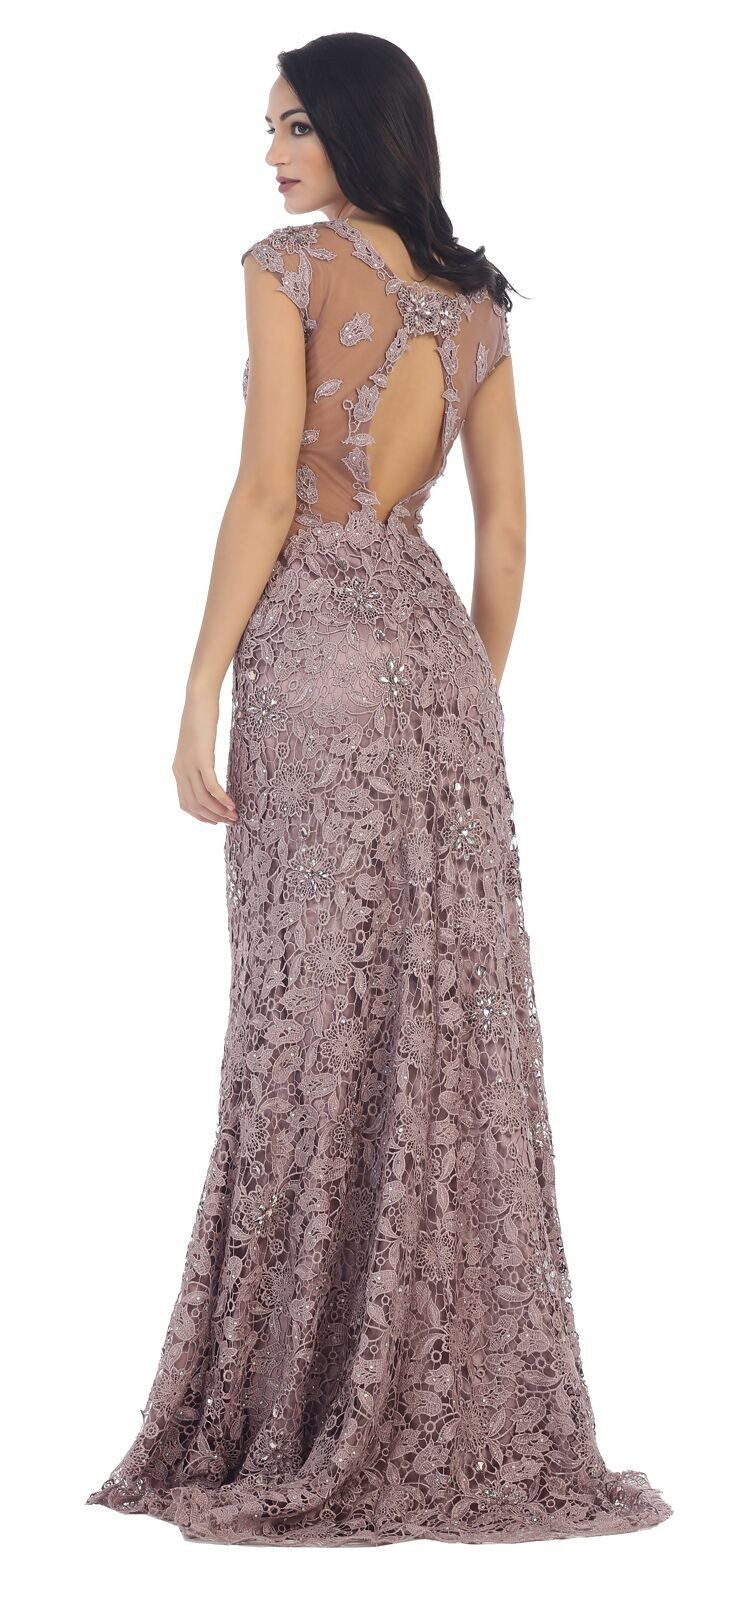 Long formal dress plus size evening gown pinterest formal